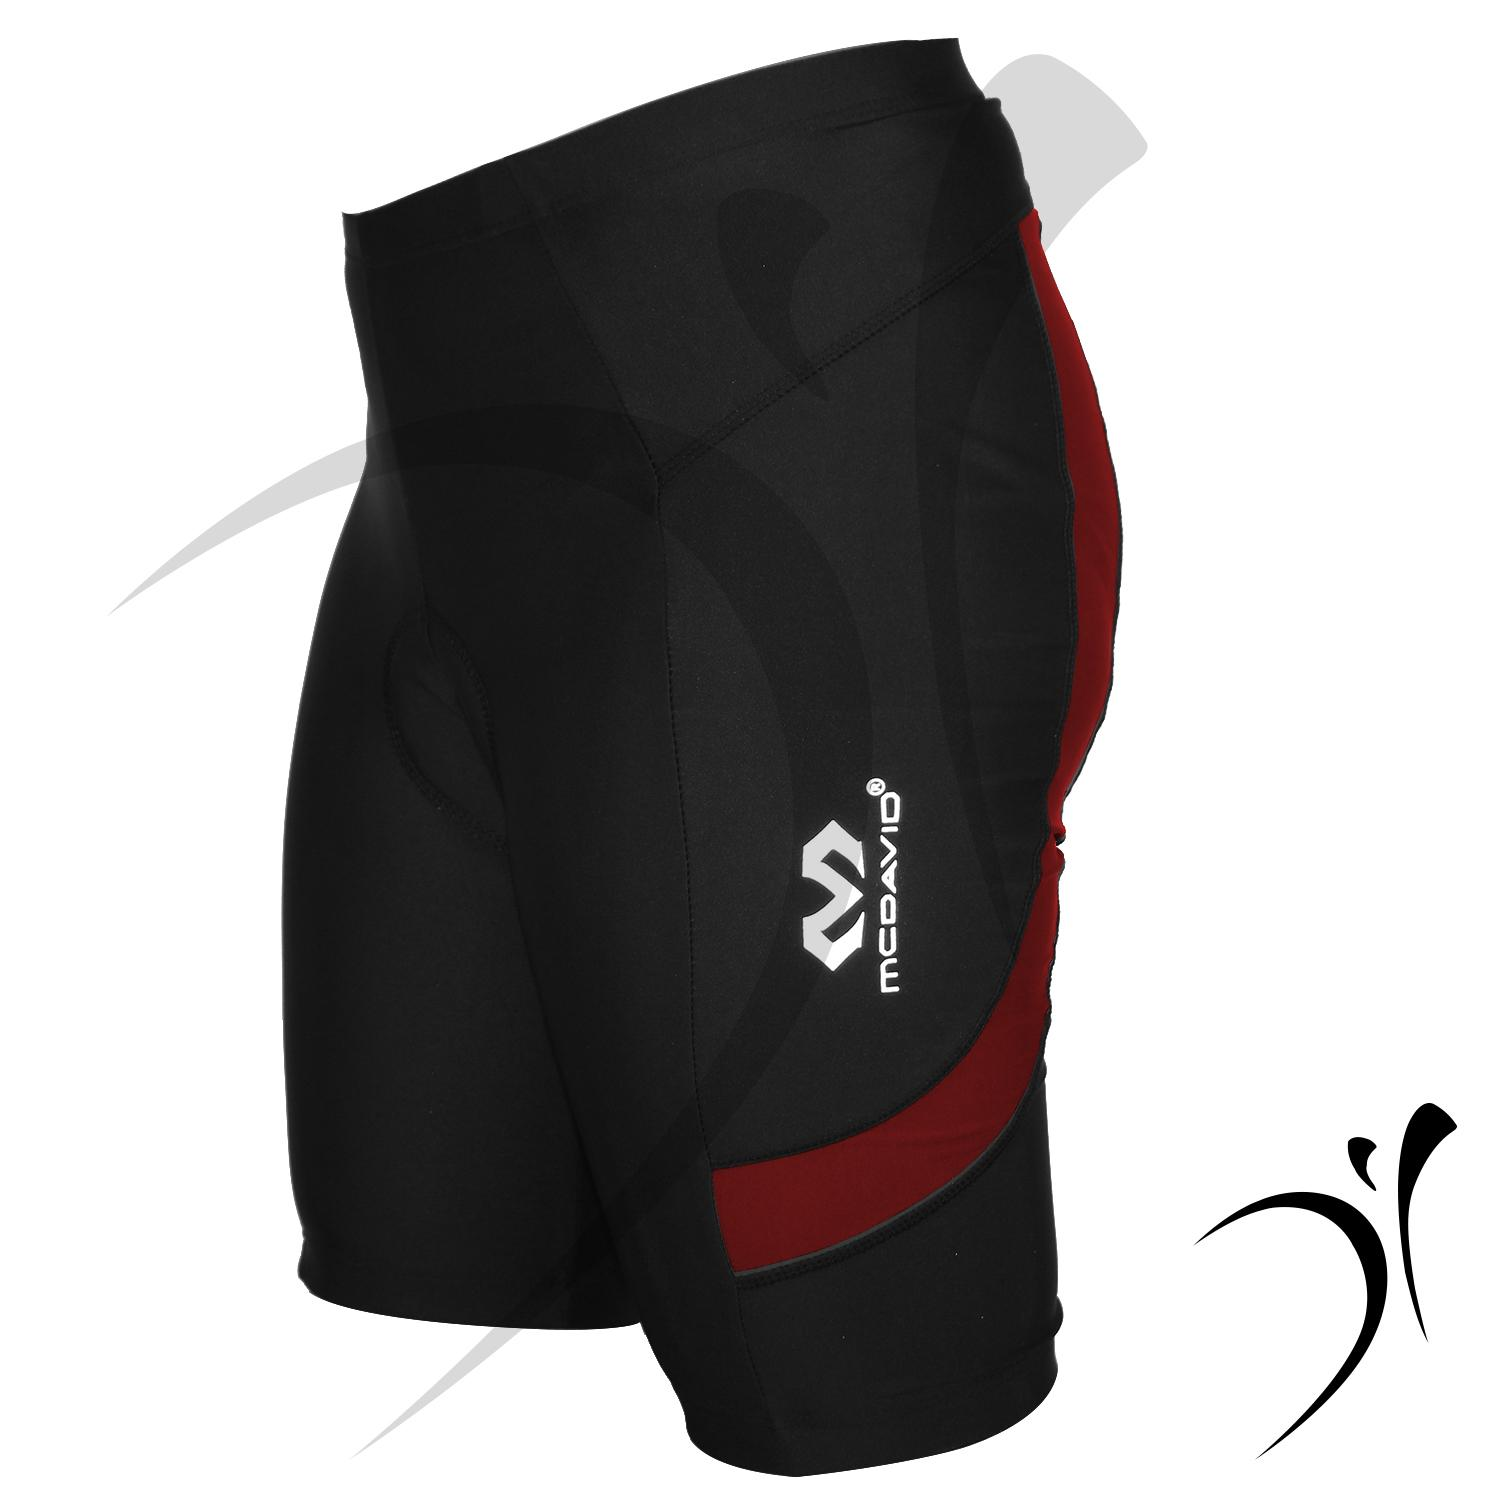 66a885e4e Athletic Shorts for Men for sale - Mens Athletic Shorts online ...